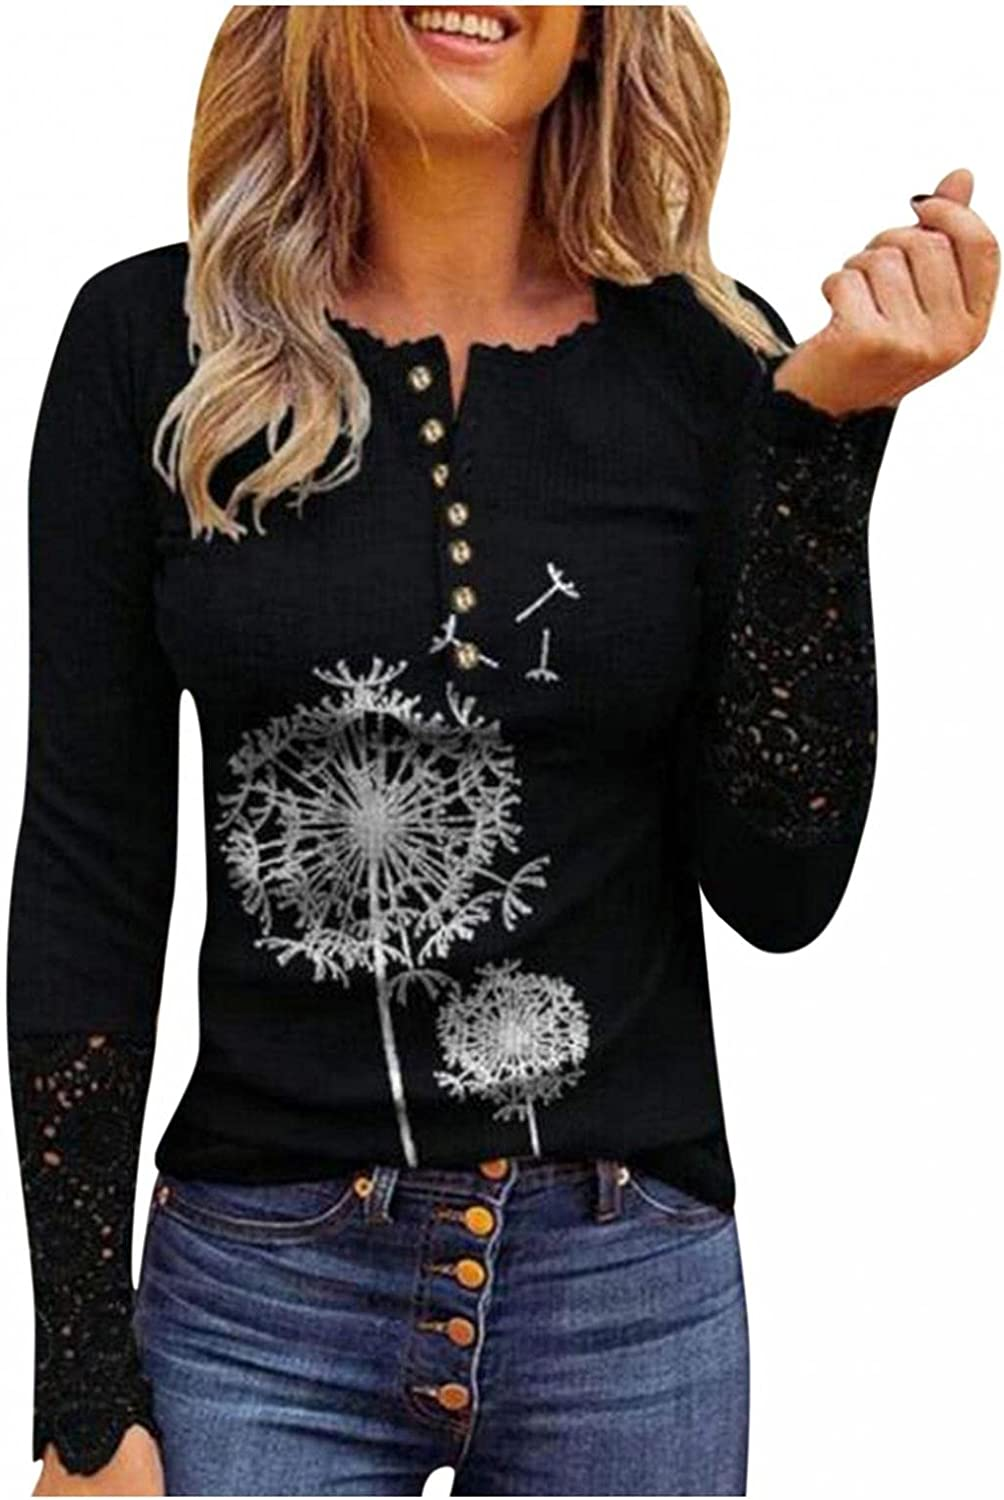 Womens Henley V Neck T-Shirt Ribbed Knit Slim Fit Casual Tops Tunic Long Sleeve Lace Button Up Shirts Blouses